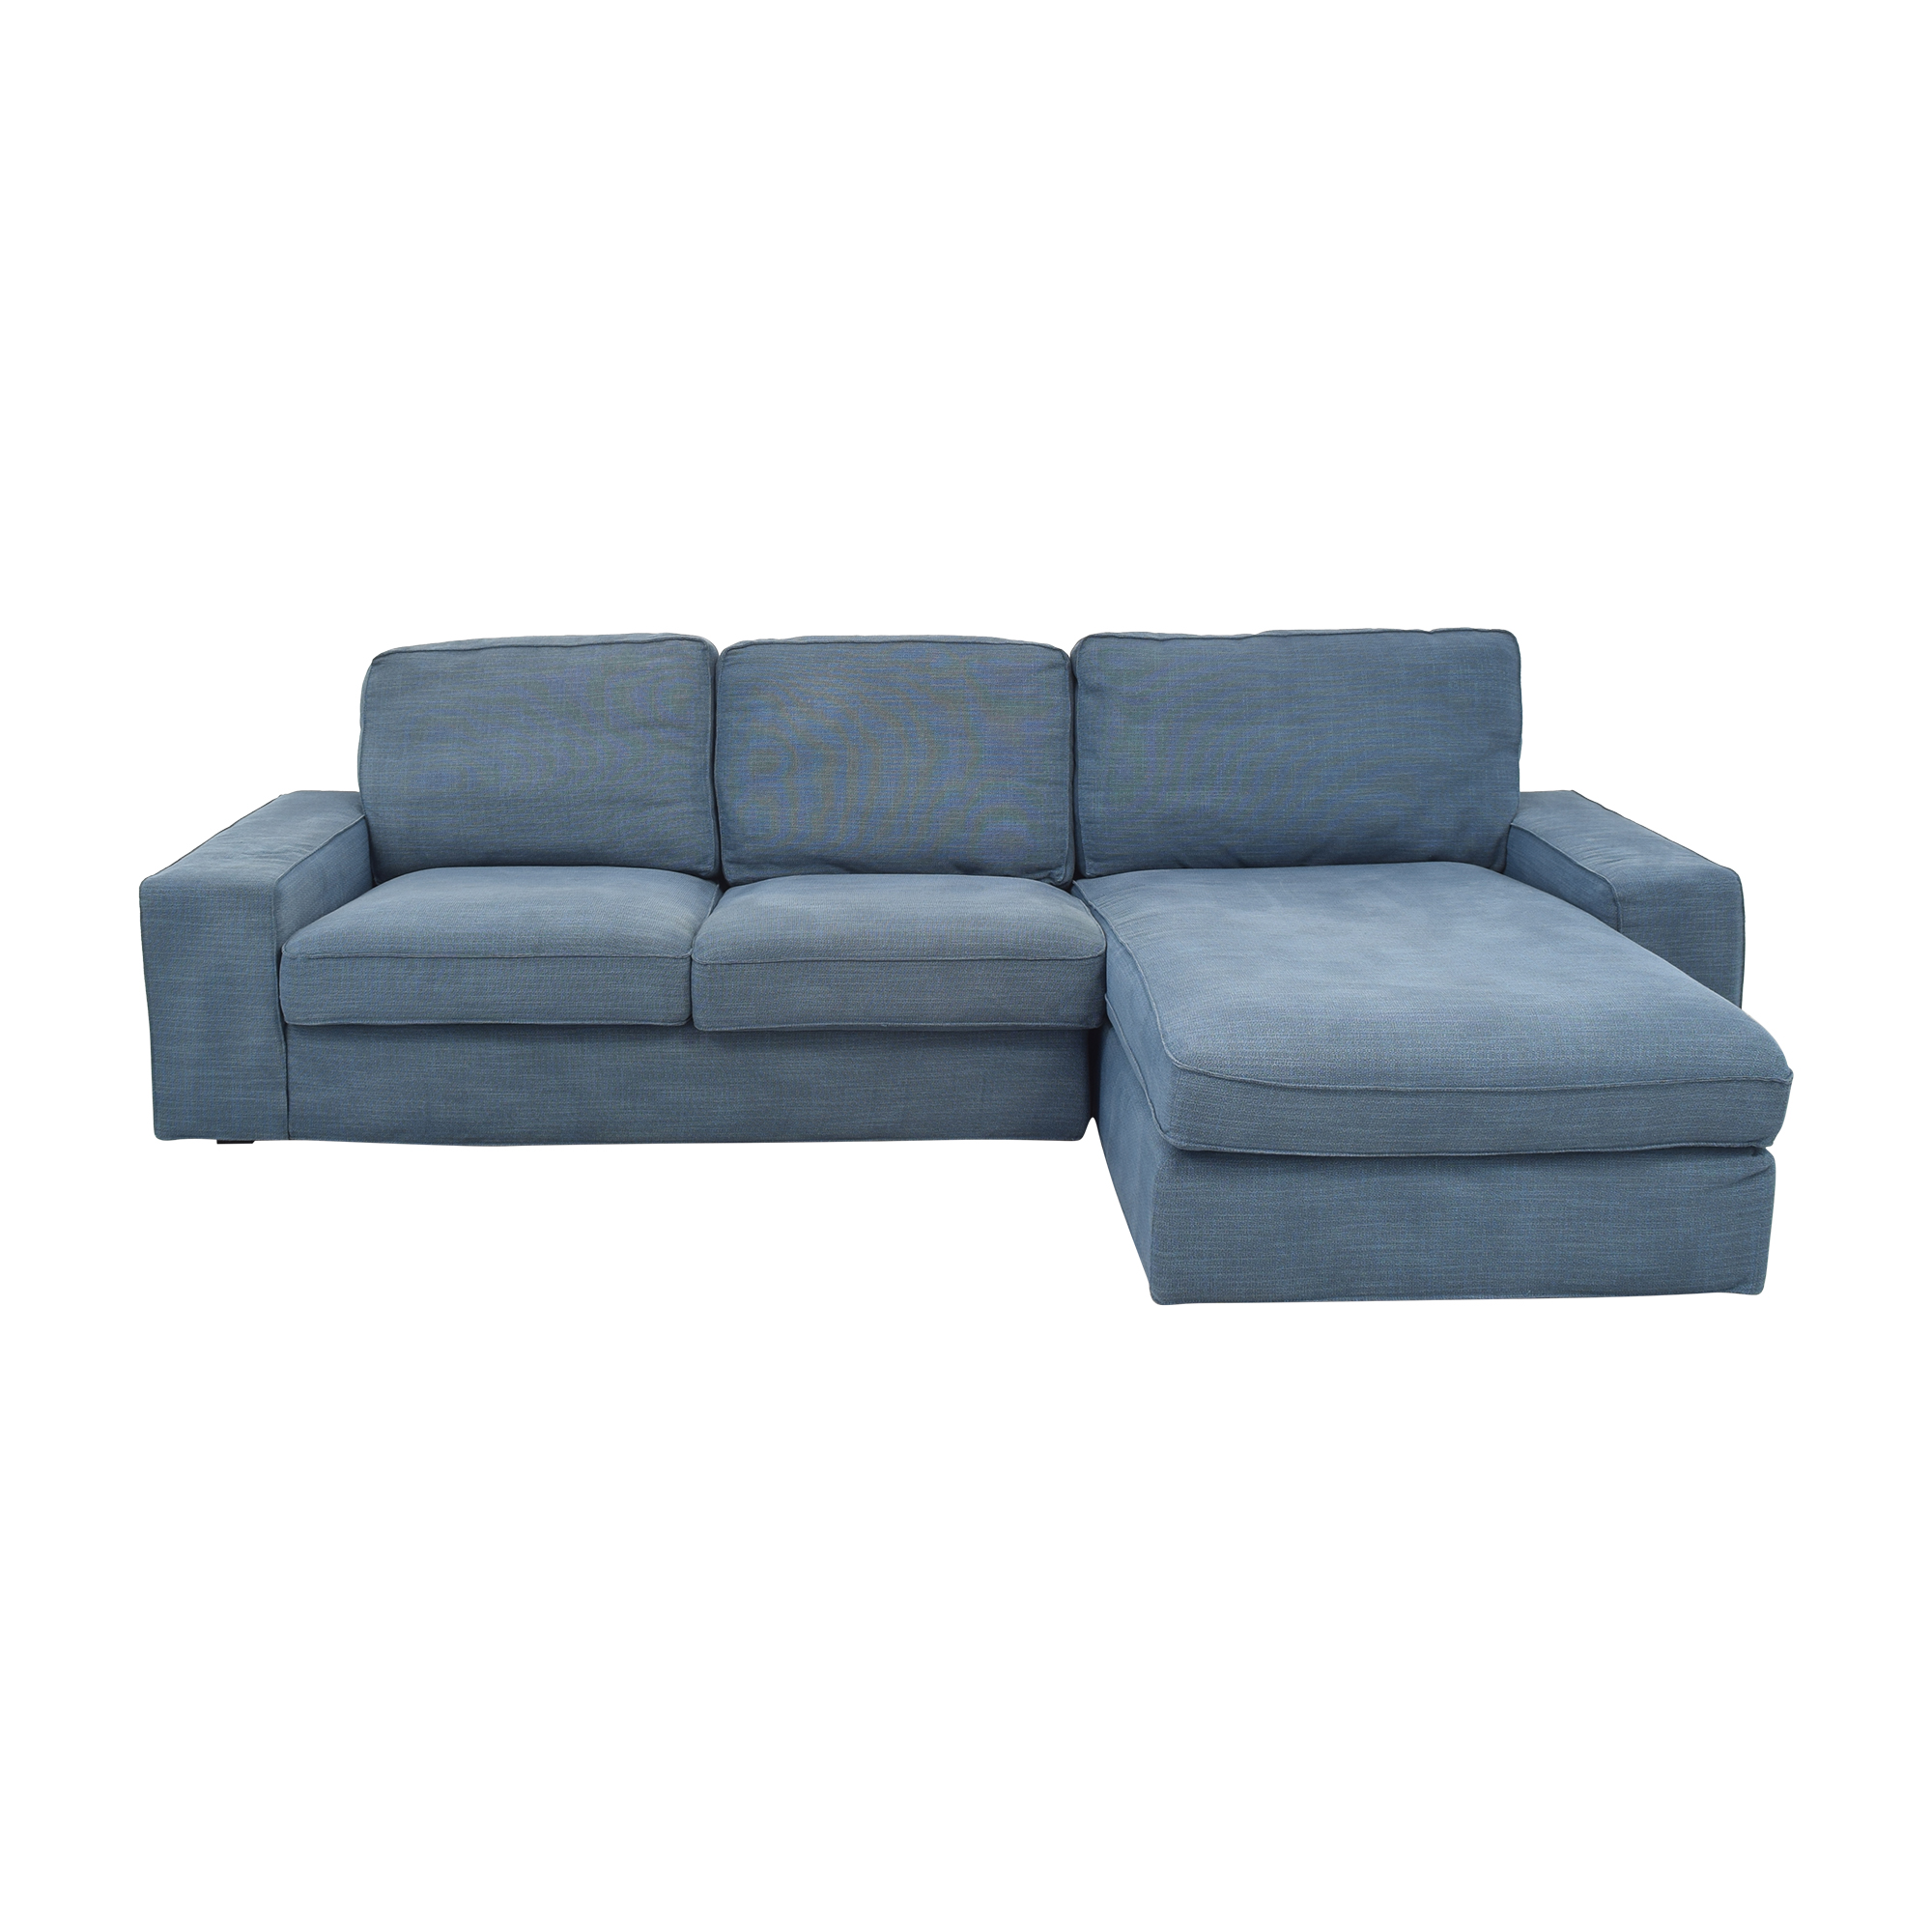 IKEA IKEA Kivik Sofa with Chaise Blue